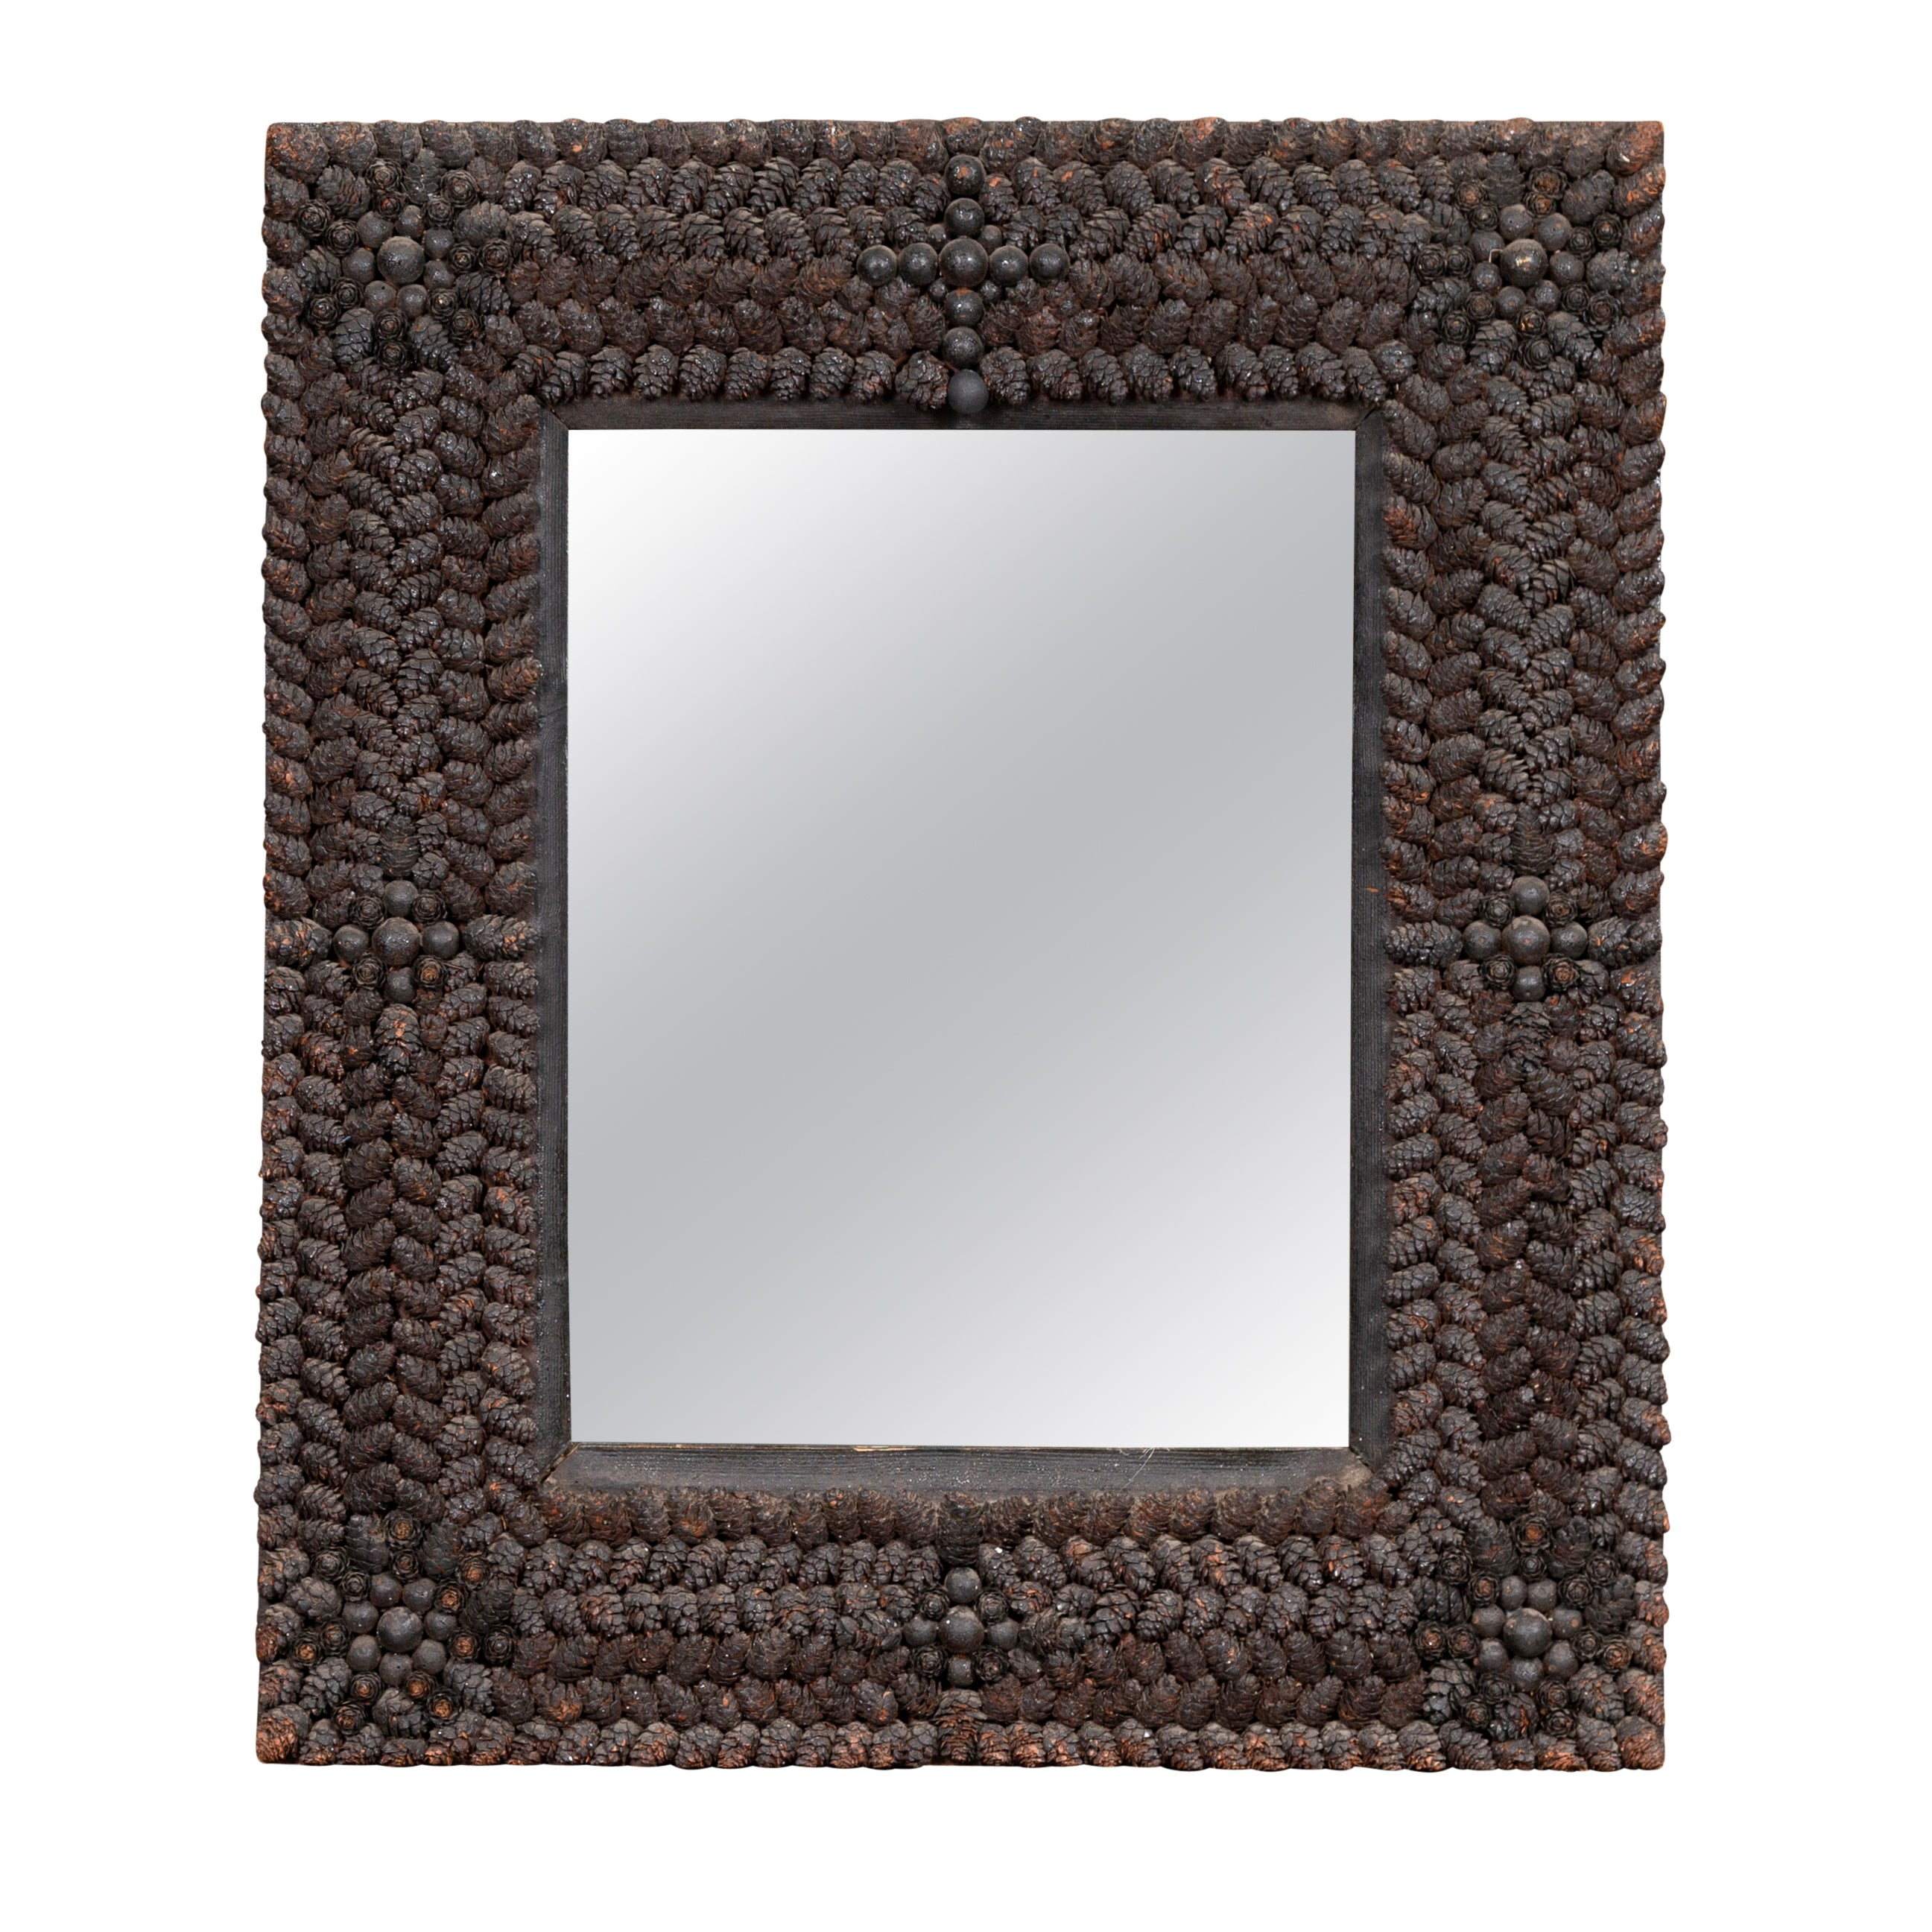 French 1920s Pinecone Mirror with Dark Patina and Floral Motifs